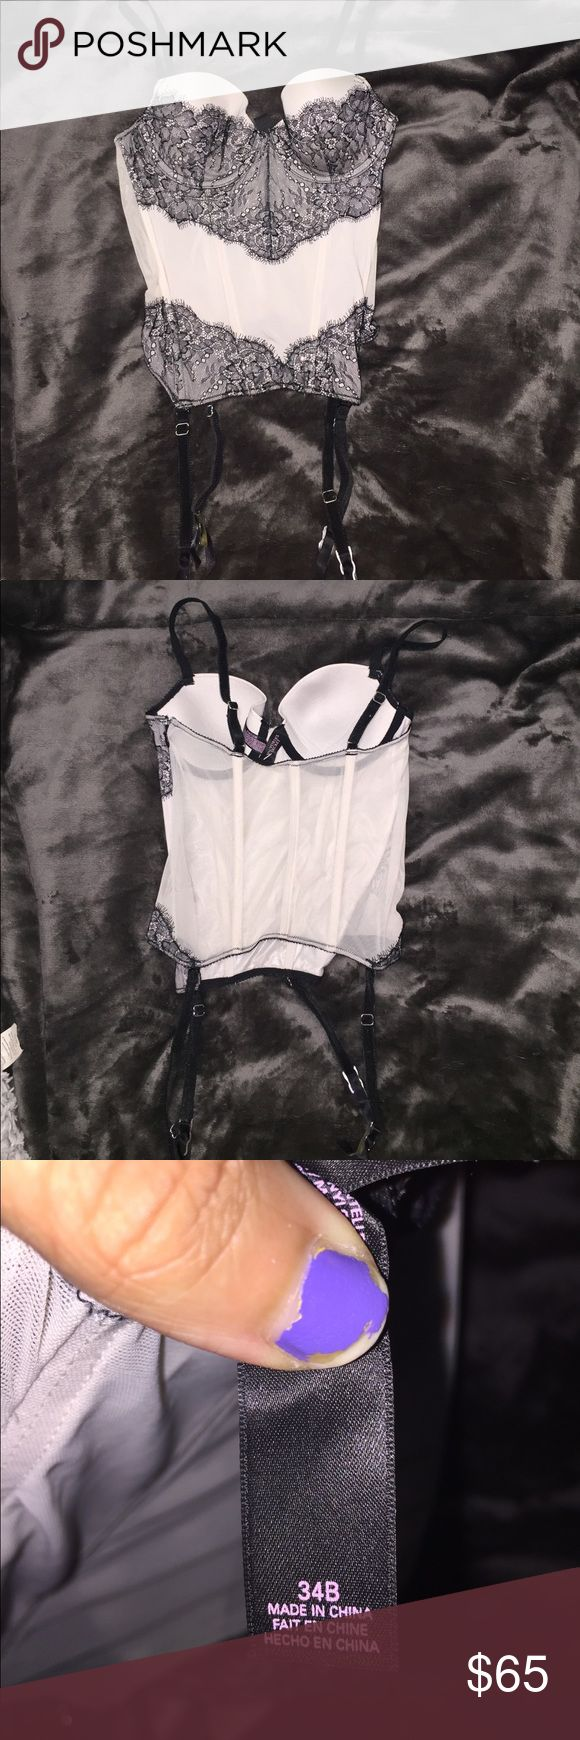 1 Hr Sale ~ Victoria Secret Lingerie good condition! very sexy and sophisticated 💖👑 the colors are black lace (w/ sparkles) and a cream/ivory color. gorgeous!! Victoria's Secret Intimates & Sleepwear